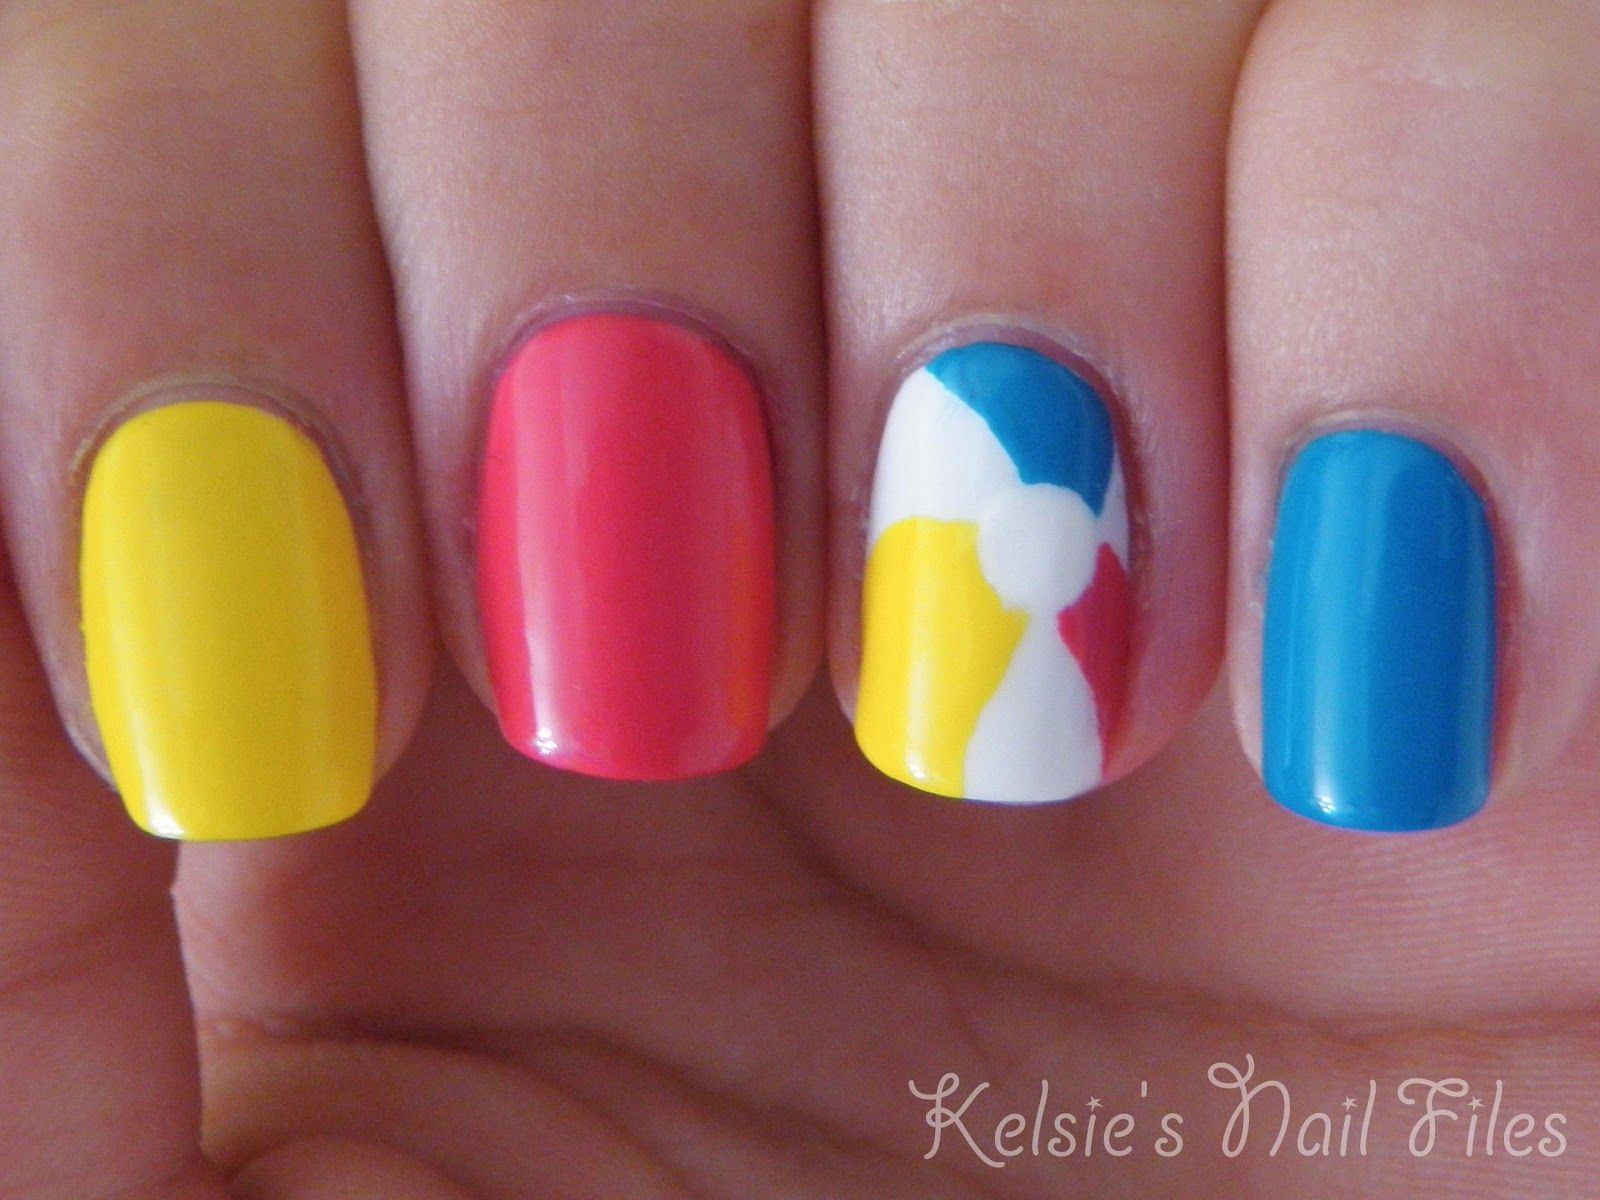 Kelsie\'s Nail Files | nail candy | Pinterest | Filing, Manicure and ...